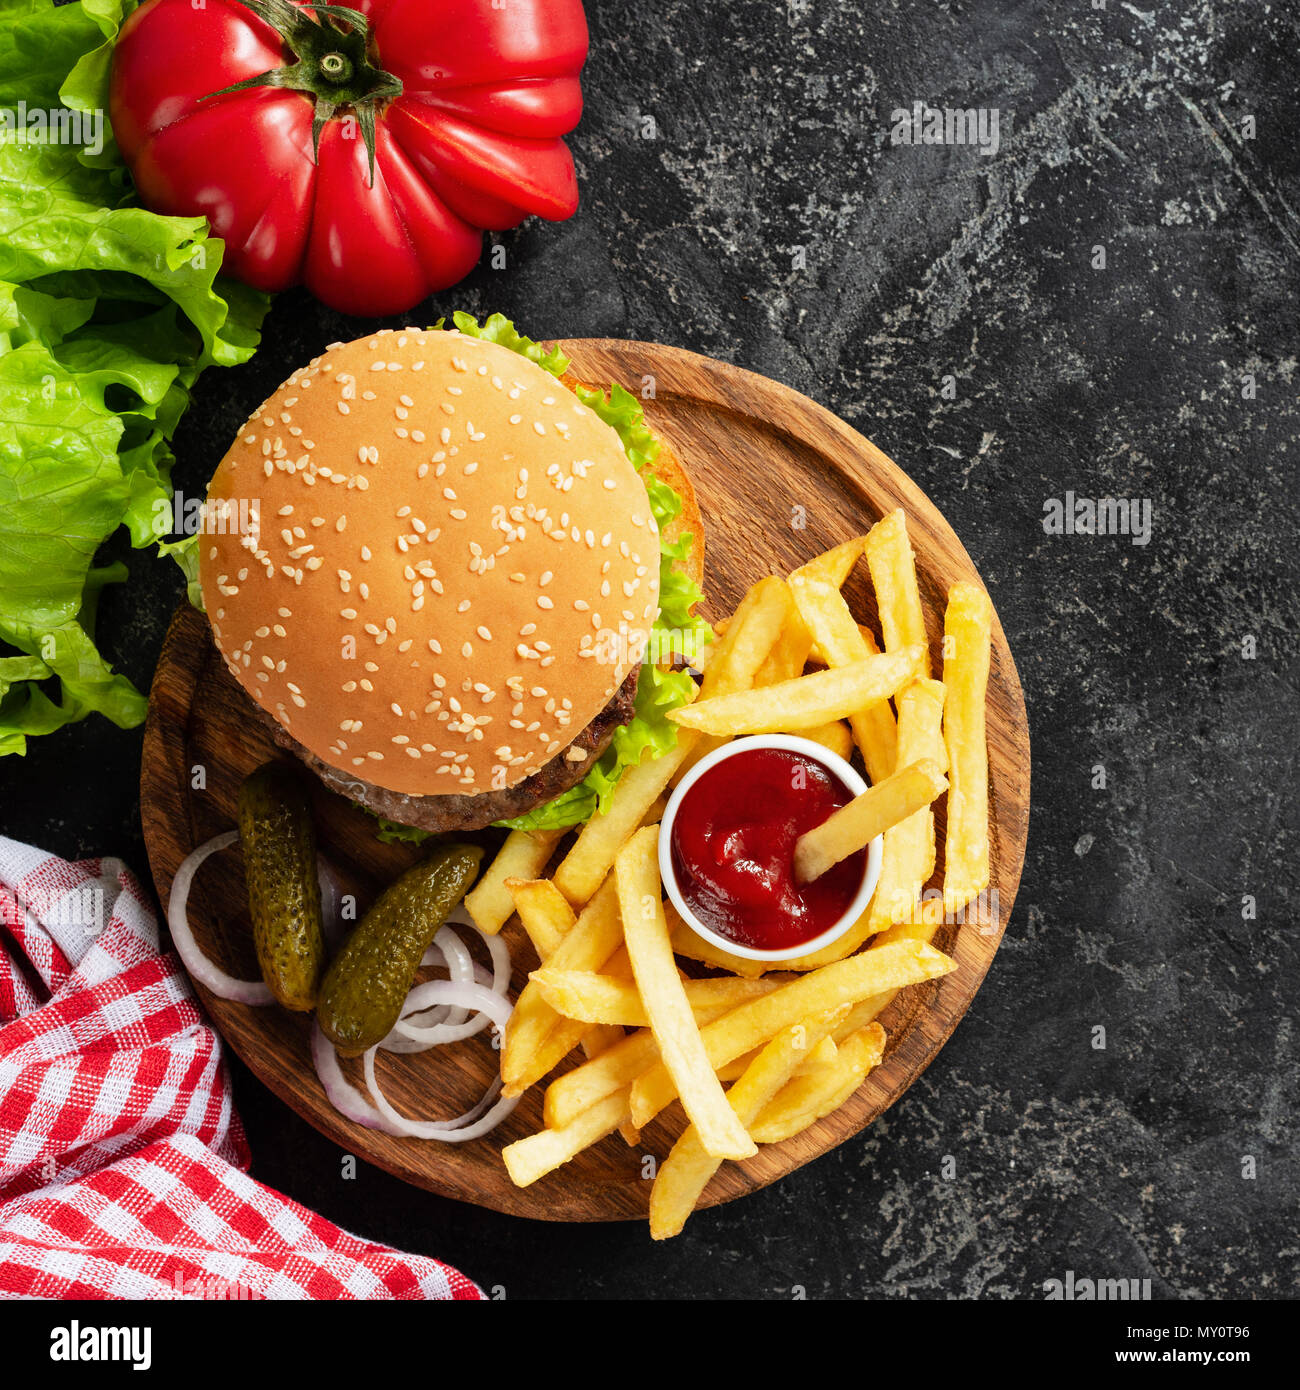 Hamburger, french fries, pickles and ketchup on wooden board. Fast food. Homemade burger and potato fries. Top view with copy space for text - Stock Image